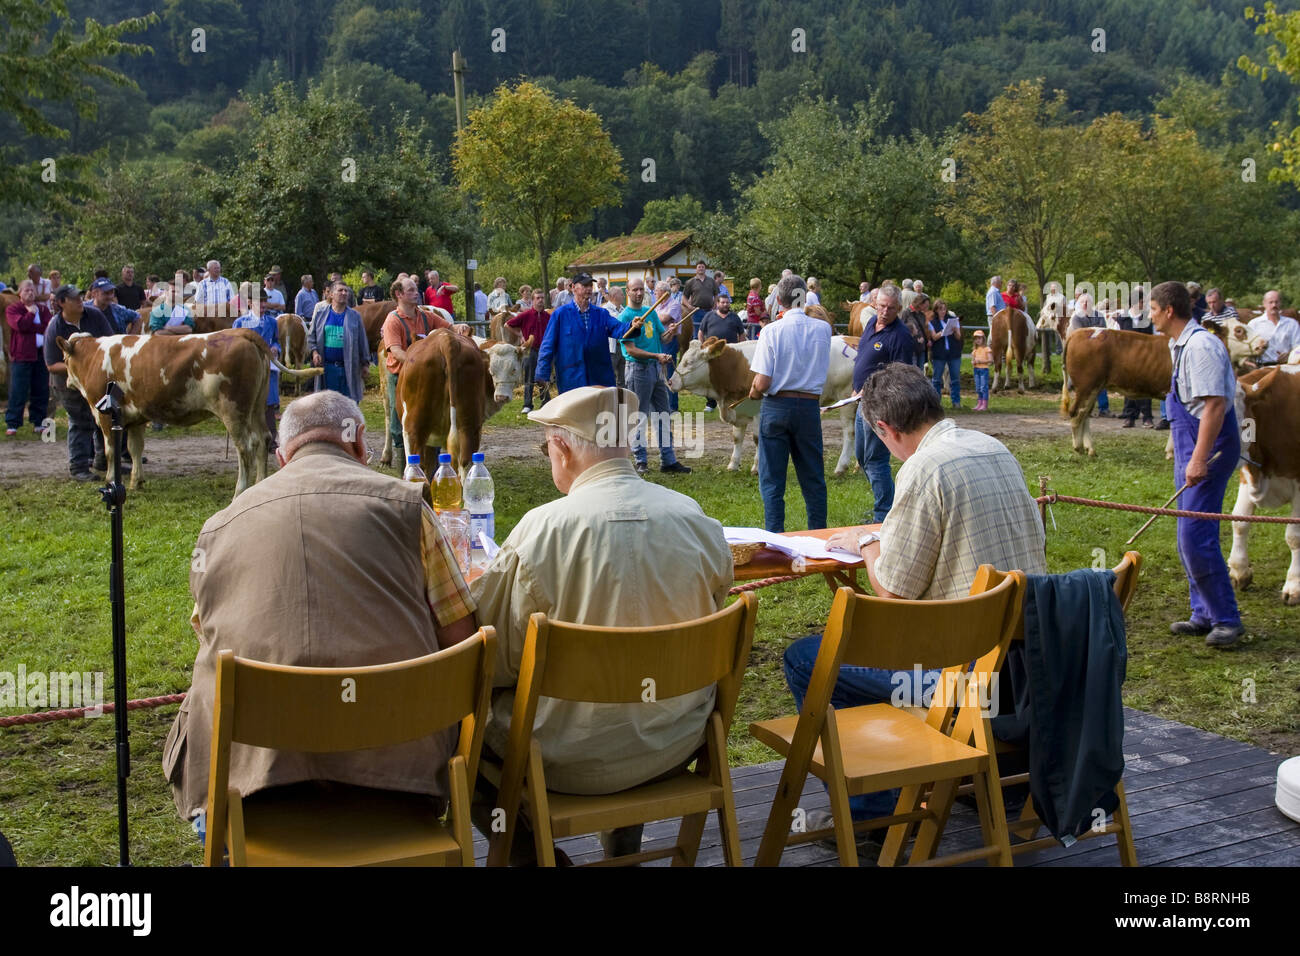 domestic cattle (Bos primigenius f. taurus), cattle vendue at the Kuckucksmarkt, Eberbach, Germany, Baden-Wuerttemberg, - Stock Image